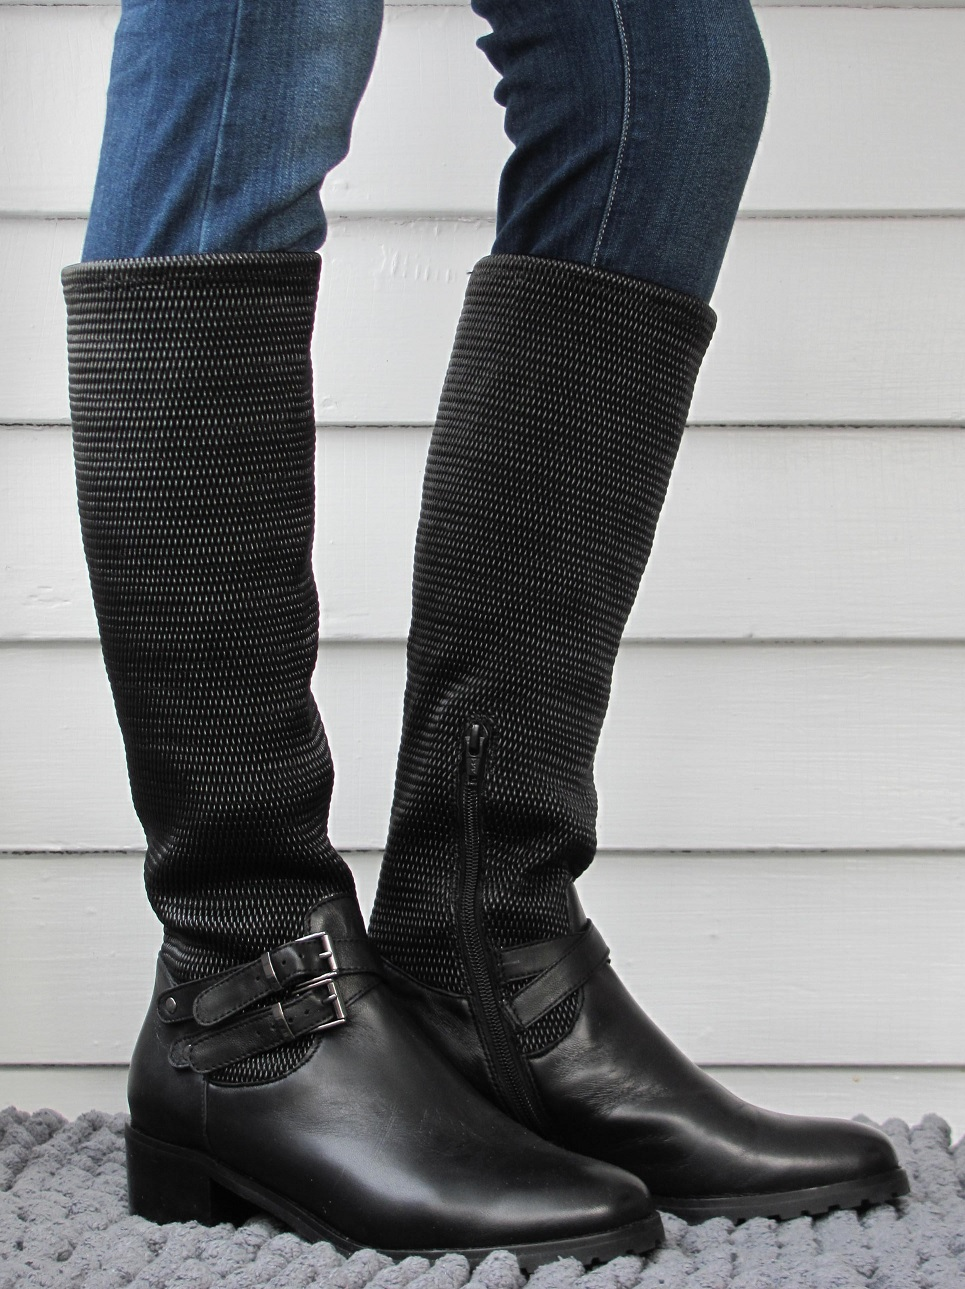 Howdy Slim Riding Boots For Thin Calves December 2015